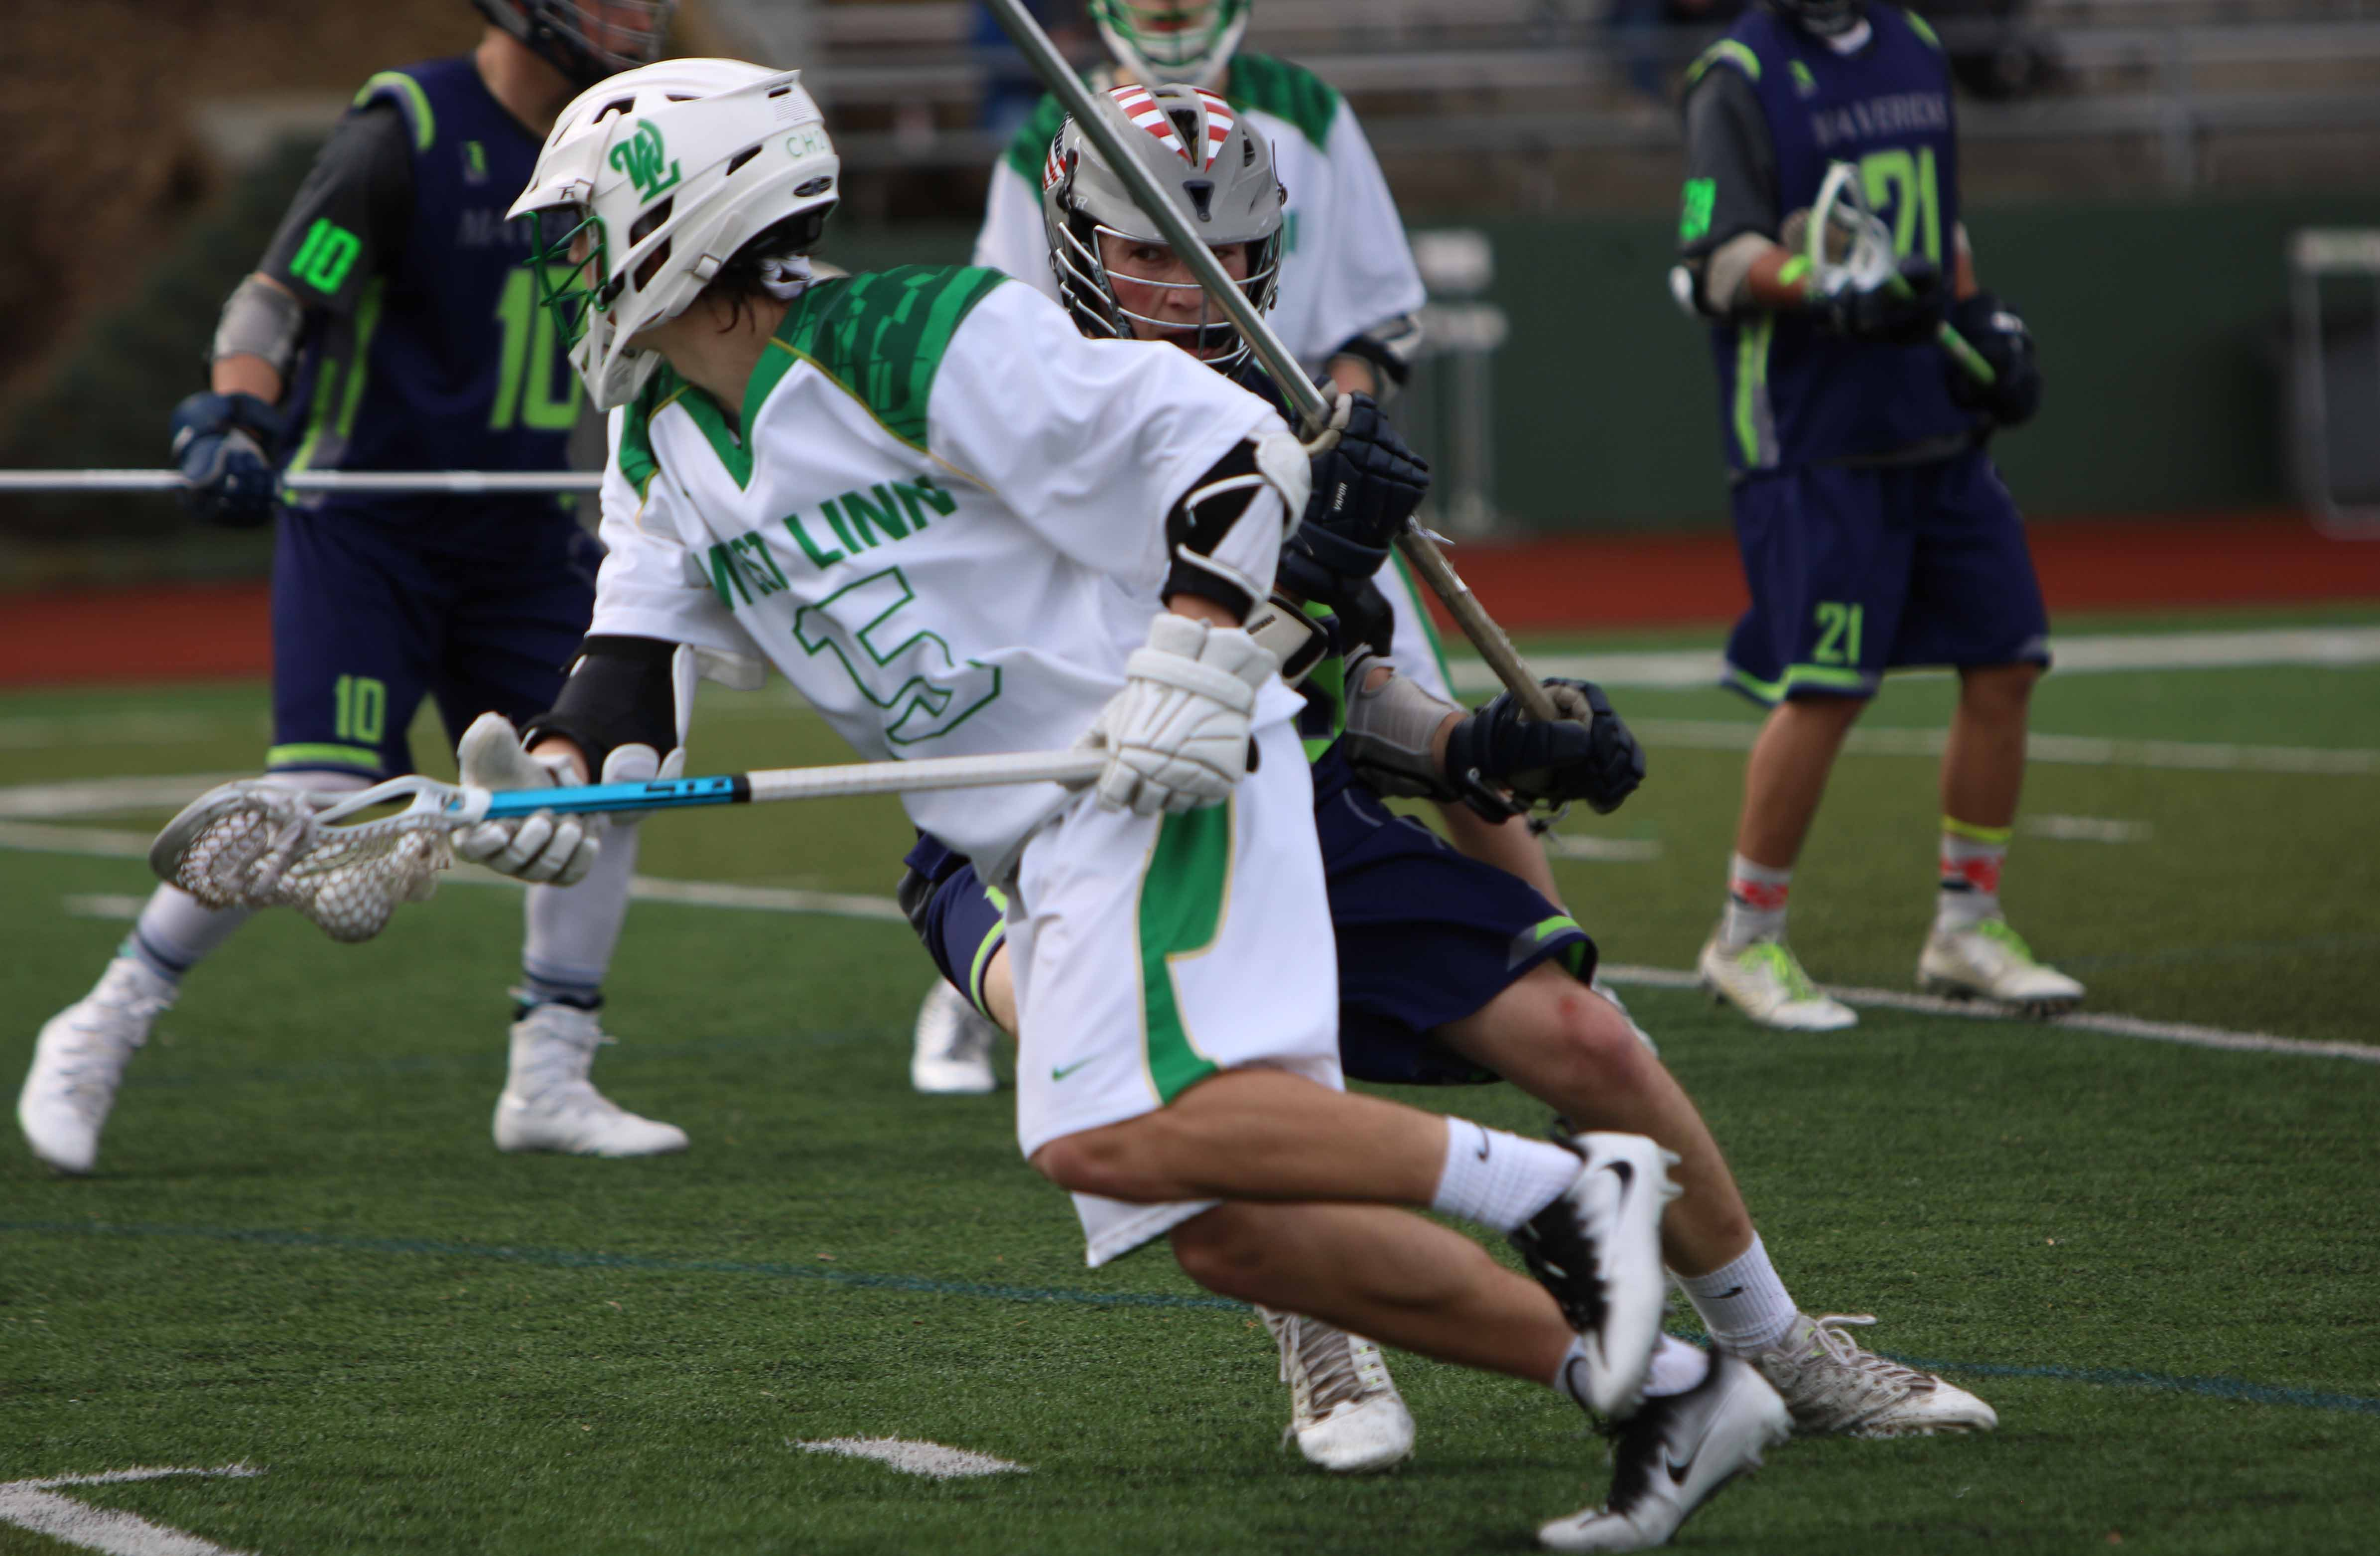 Dodging past defenders Ross Scott, sophmore attackman, looks up the field to teammates in 12-7 win against Oregon Episcopal School.